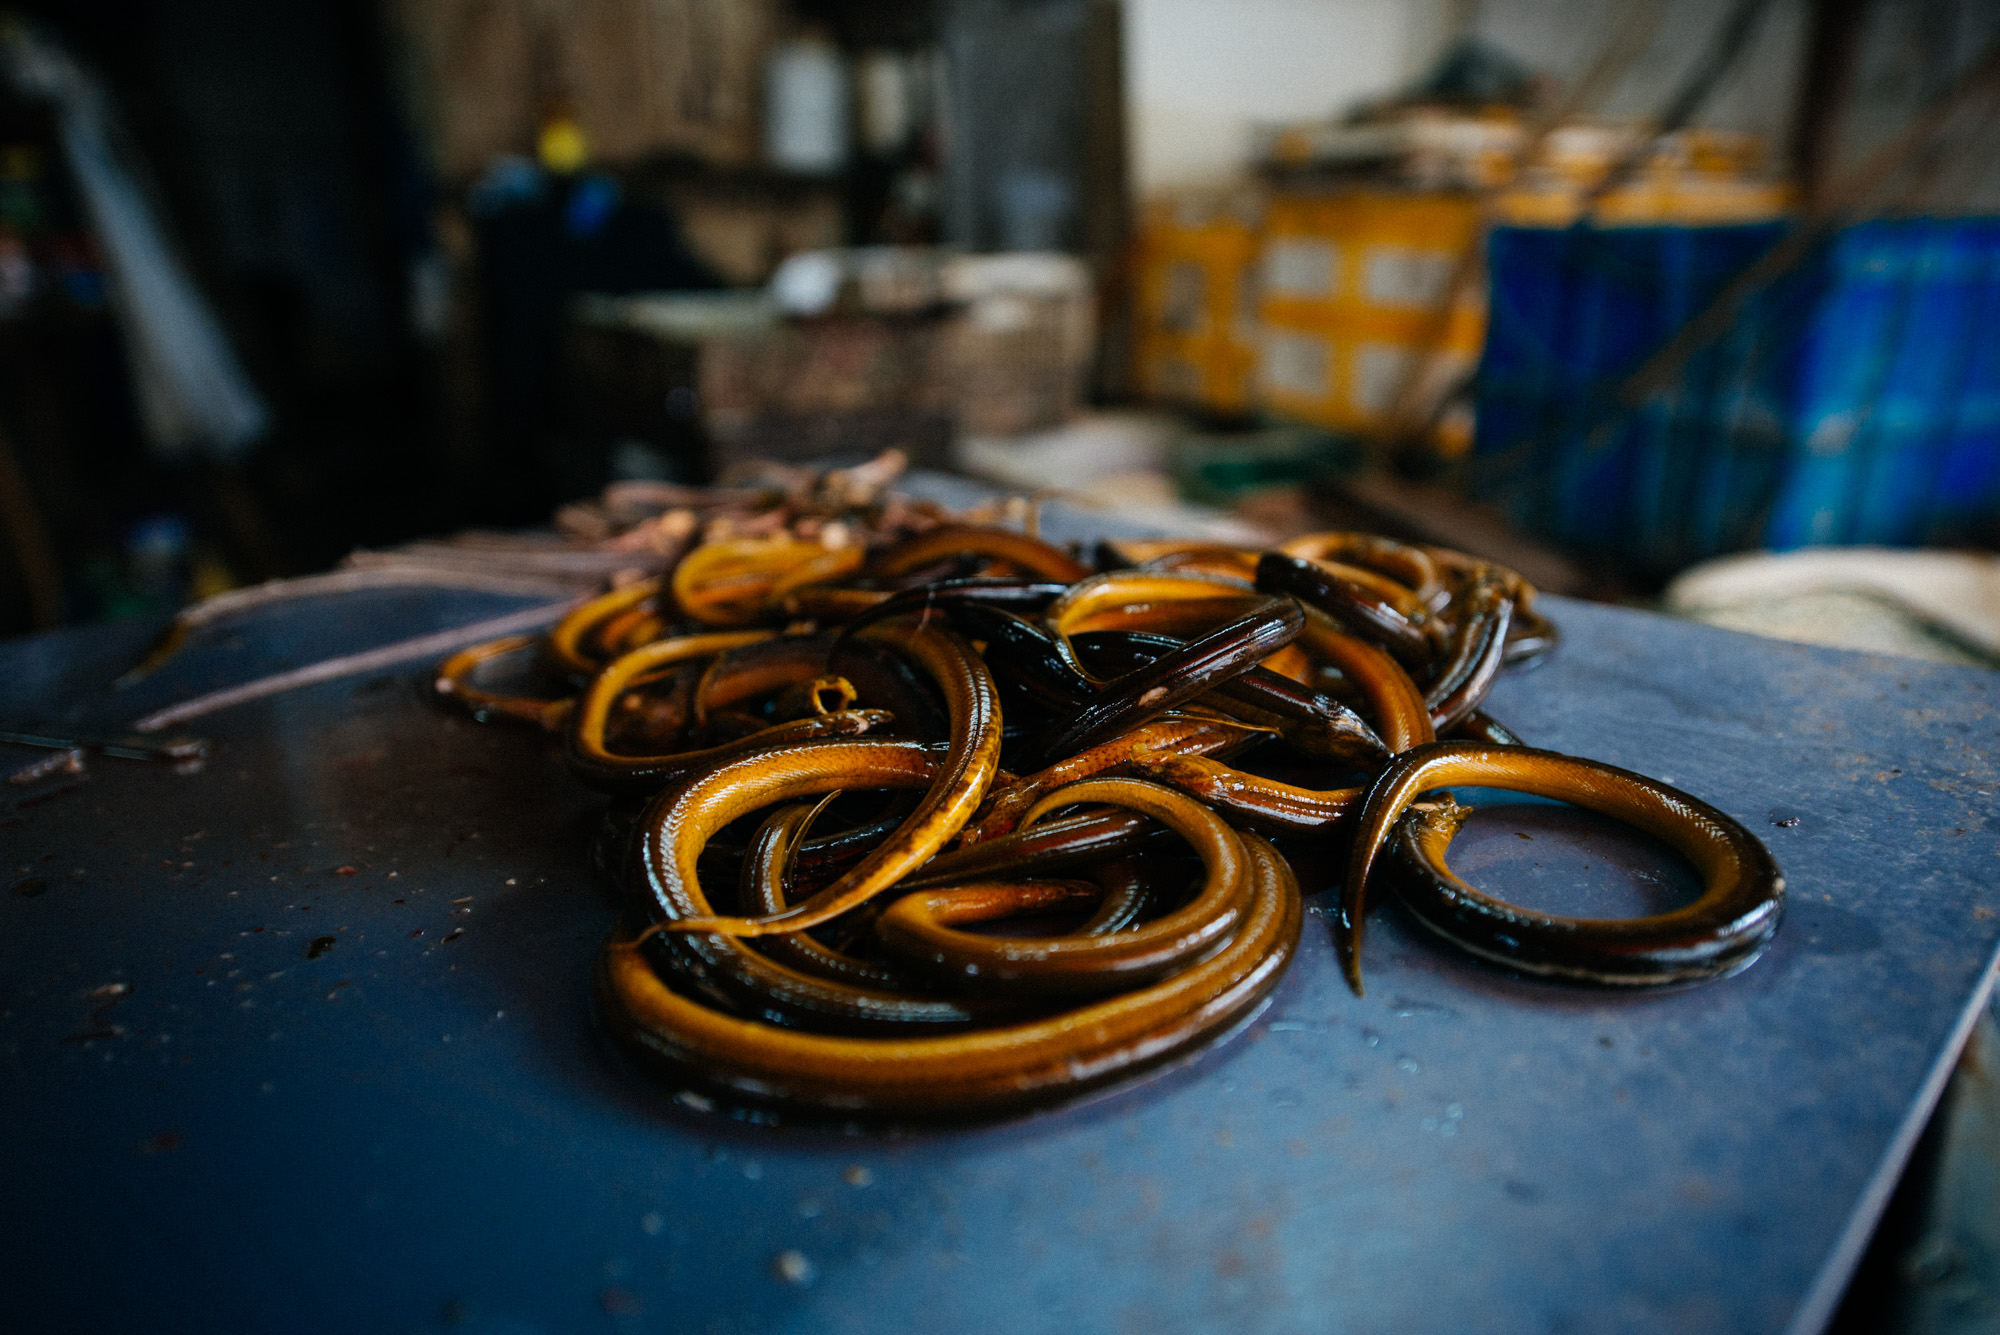 Further down the road a woman, who also had live eels, would fry the animals and sell them ready for consumption.